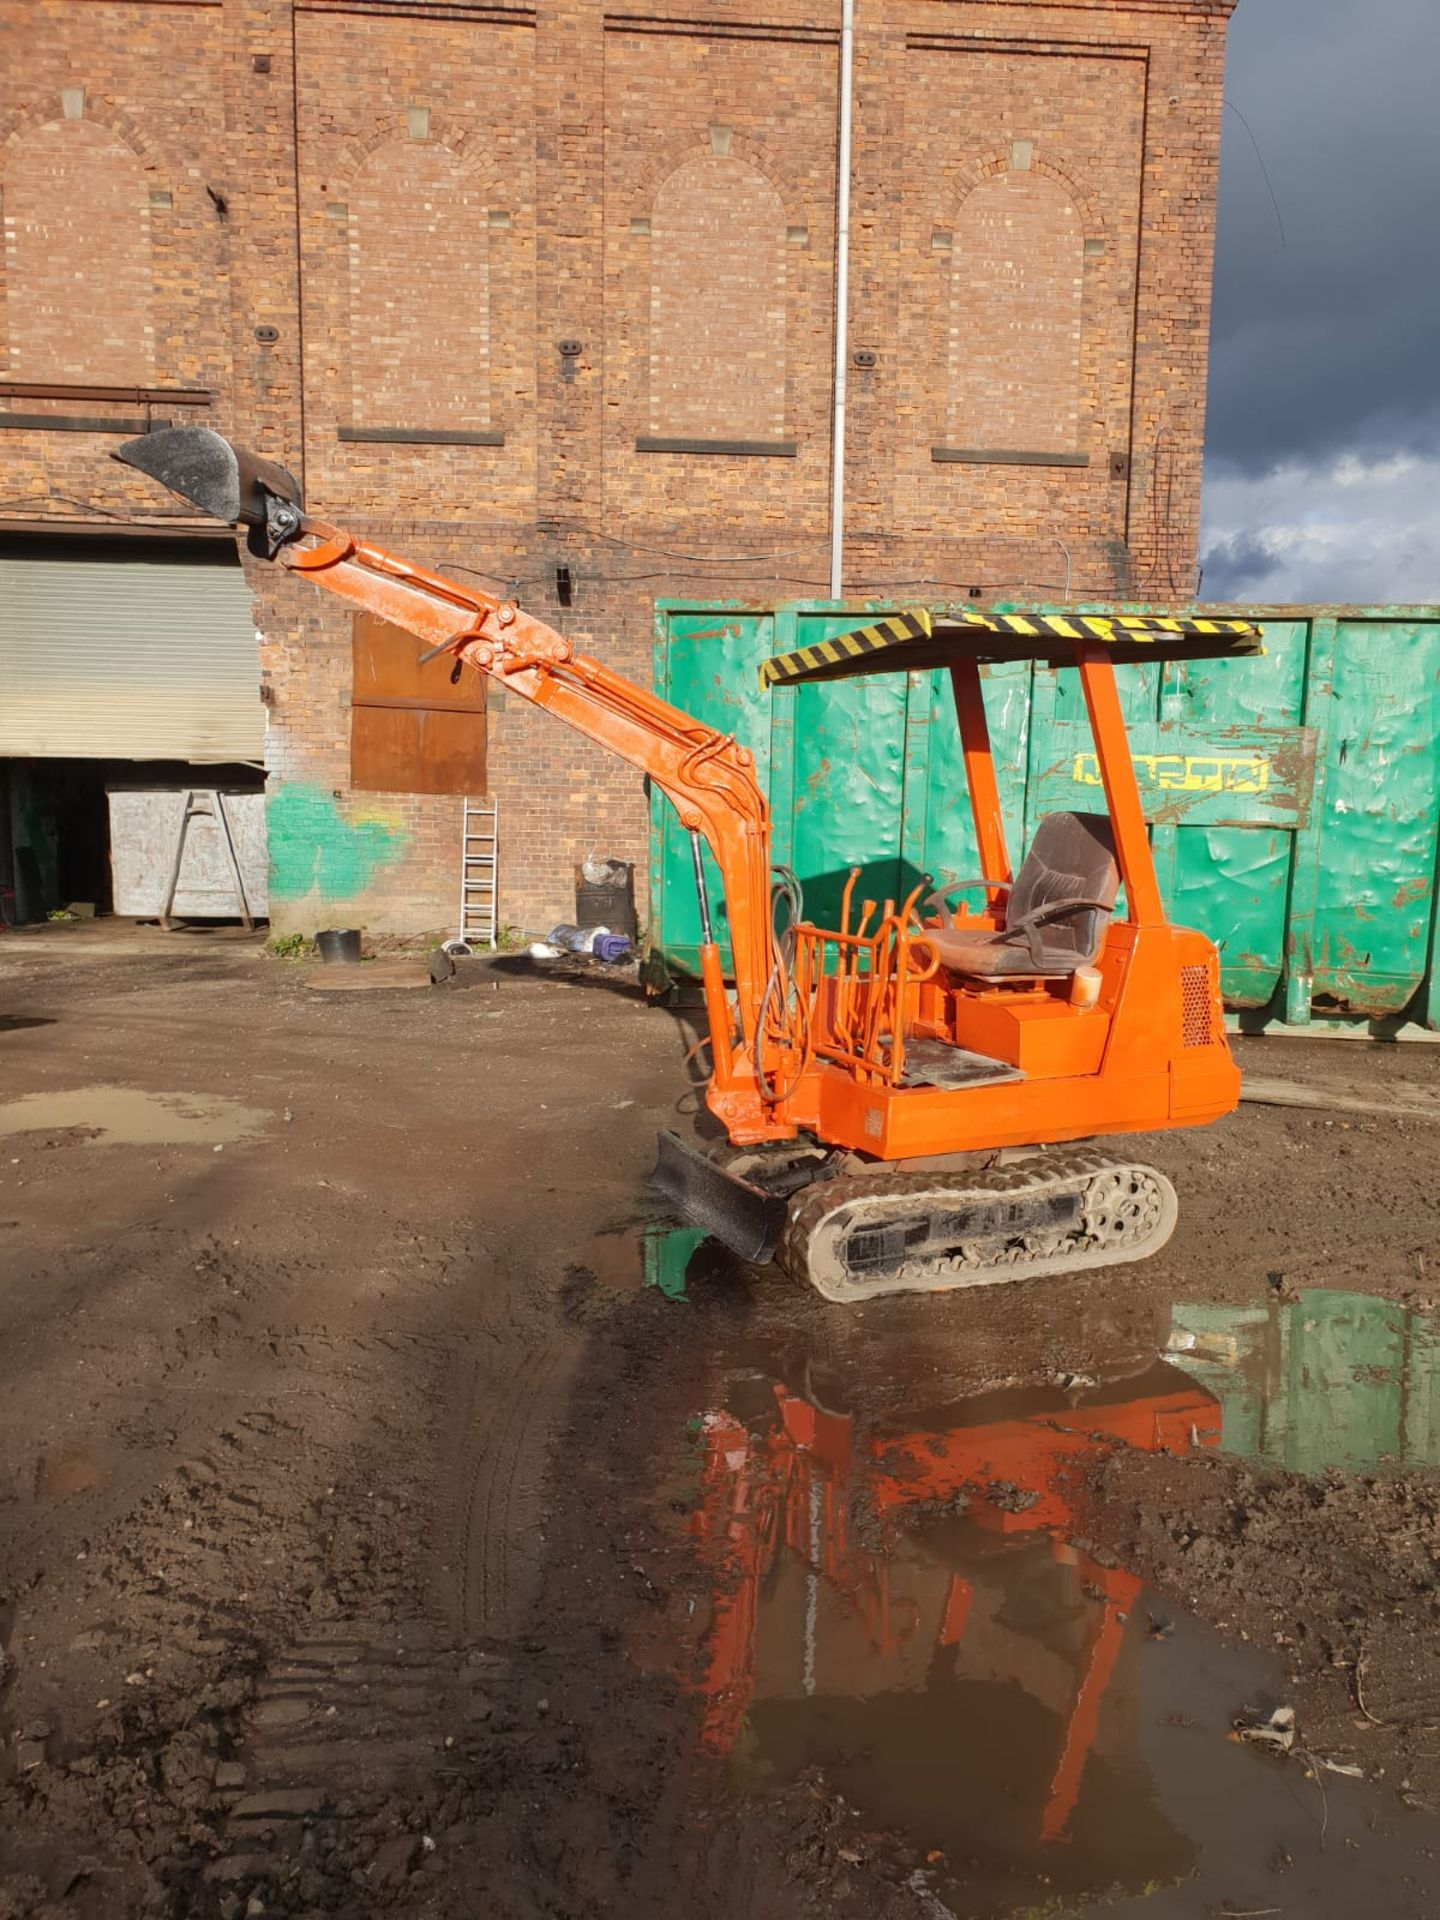 KUBOTA MINI DIGGER RUBBER TRACKED EXCAVATOR, 1.5 TON, STARTS AND DRIVES *NO VAT* - Image 6 of 8